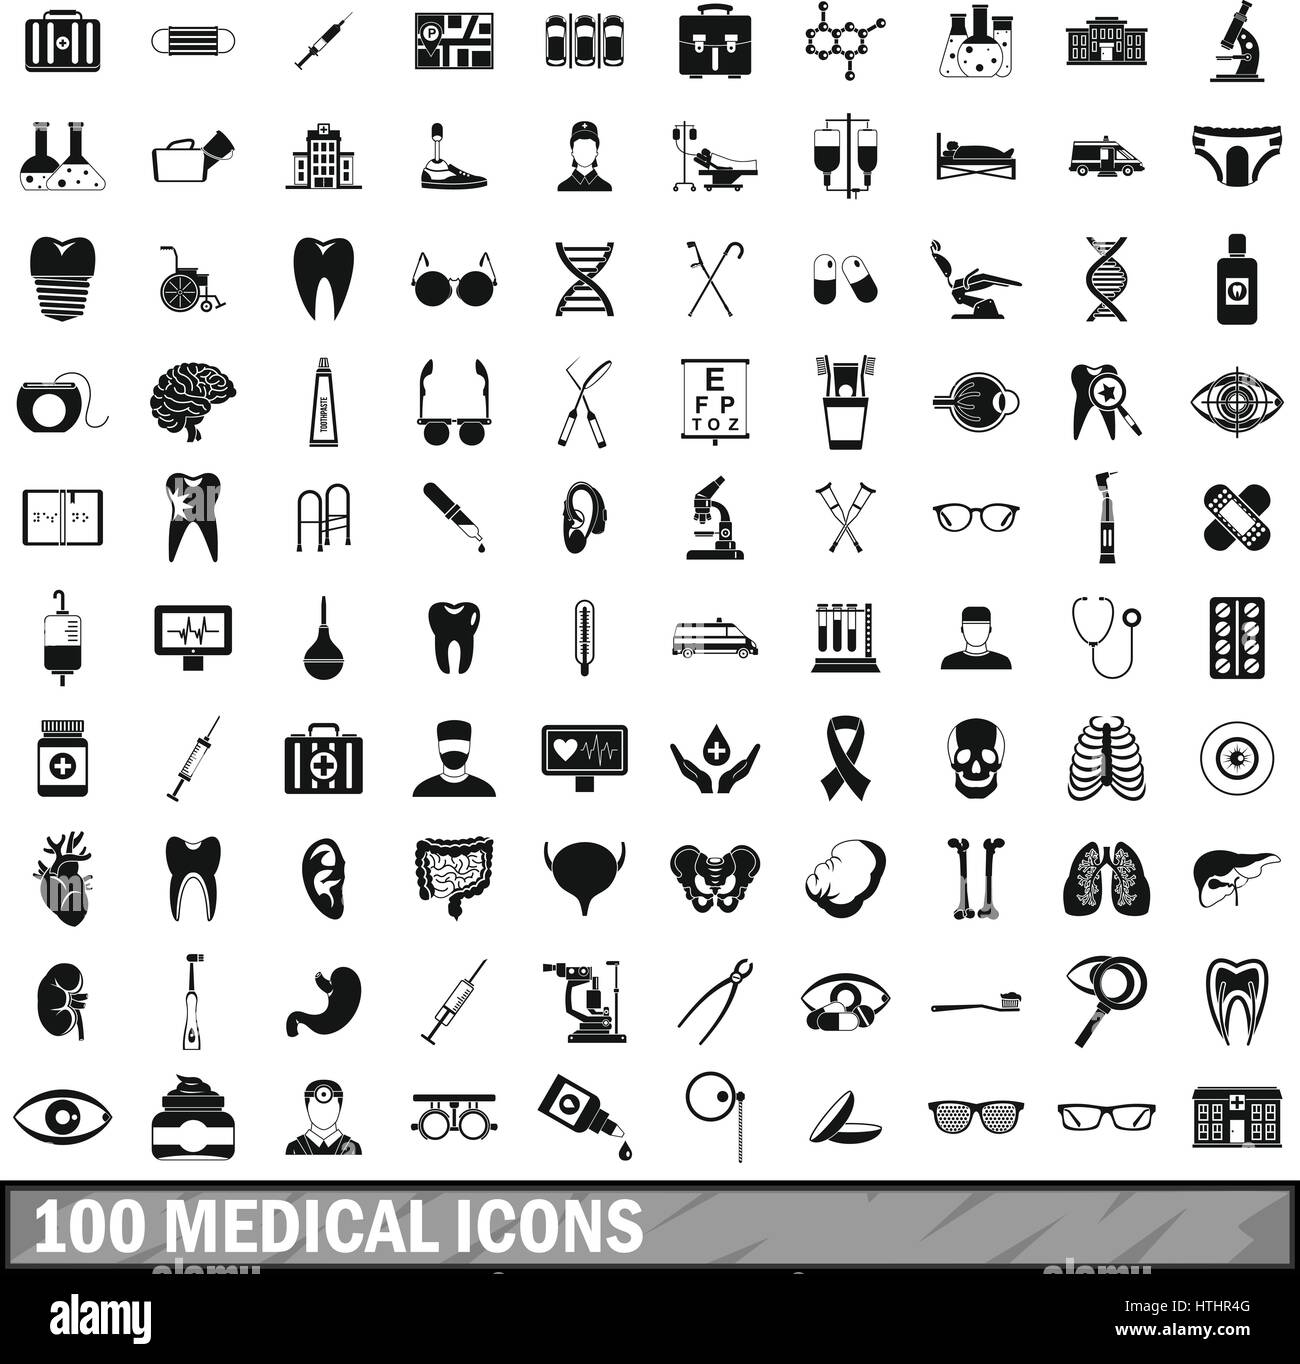 100 medical icons set in simple style for any design vector illustration Stock Vector